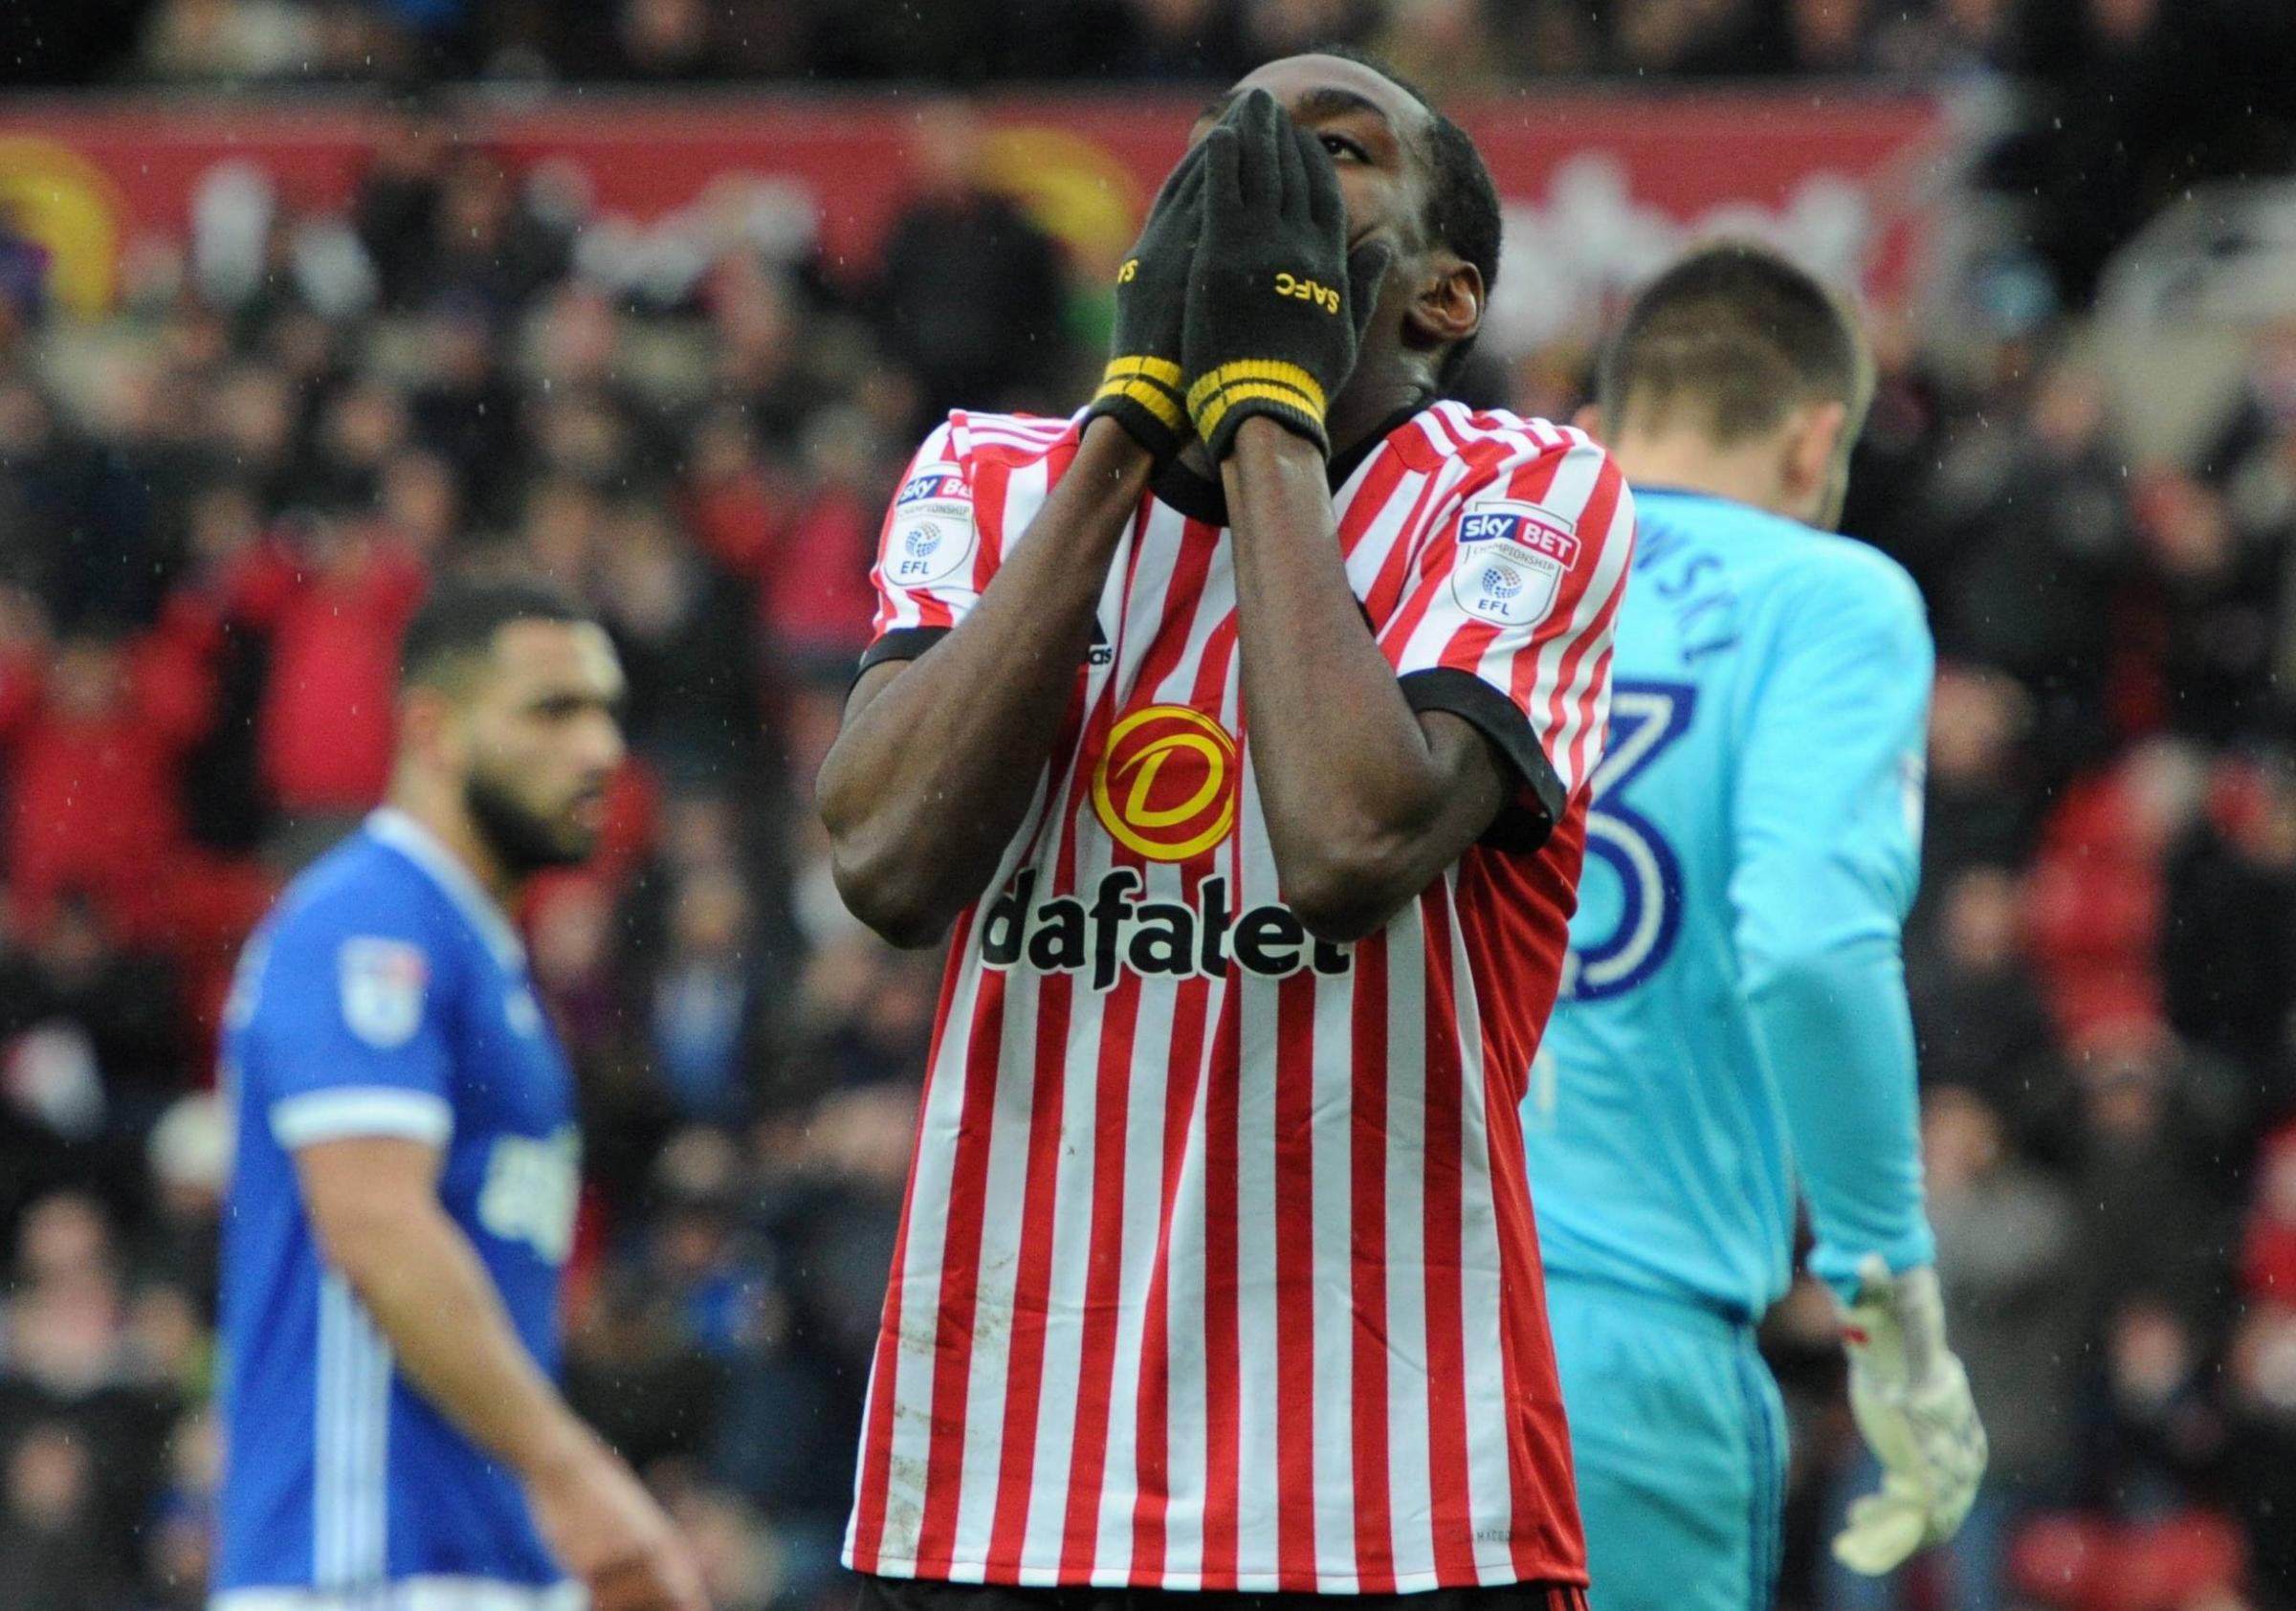 OH NO: Joel Asoro shows his disappointment during Sunderland's 2-0 defeat to Ipswich (Picture: North News)